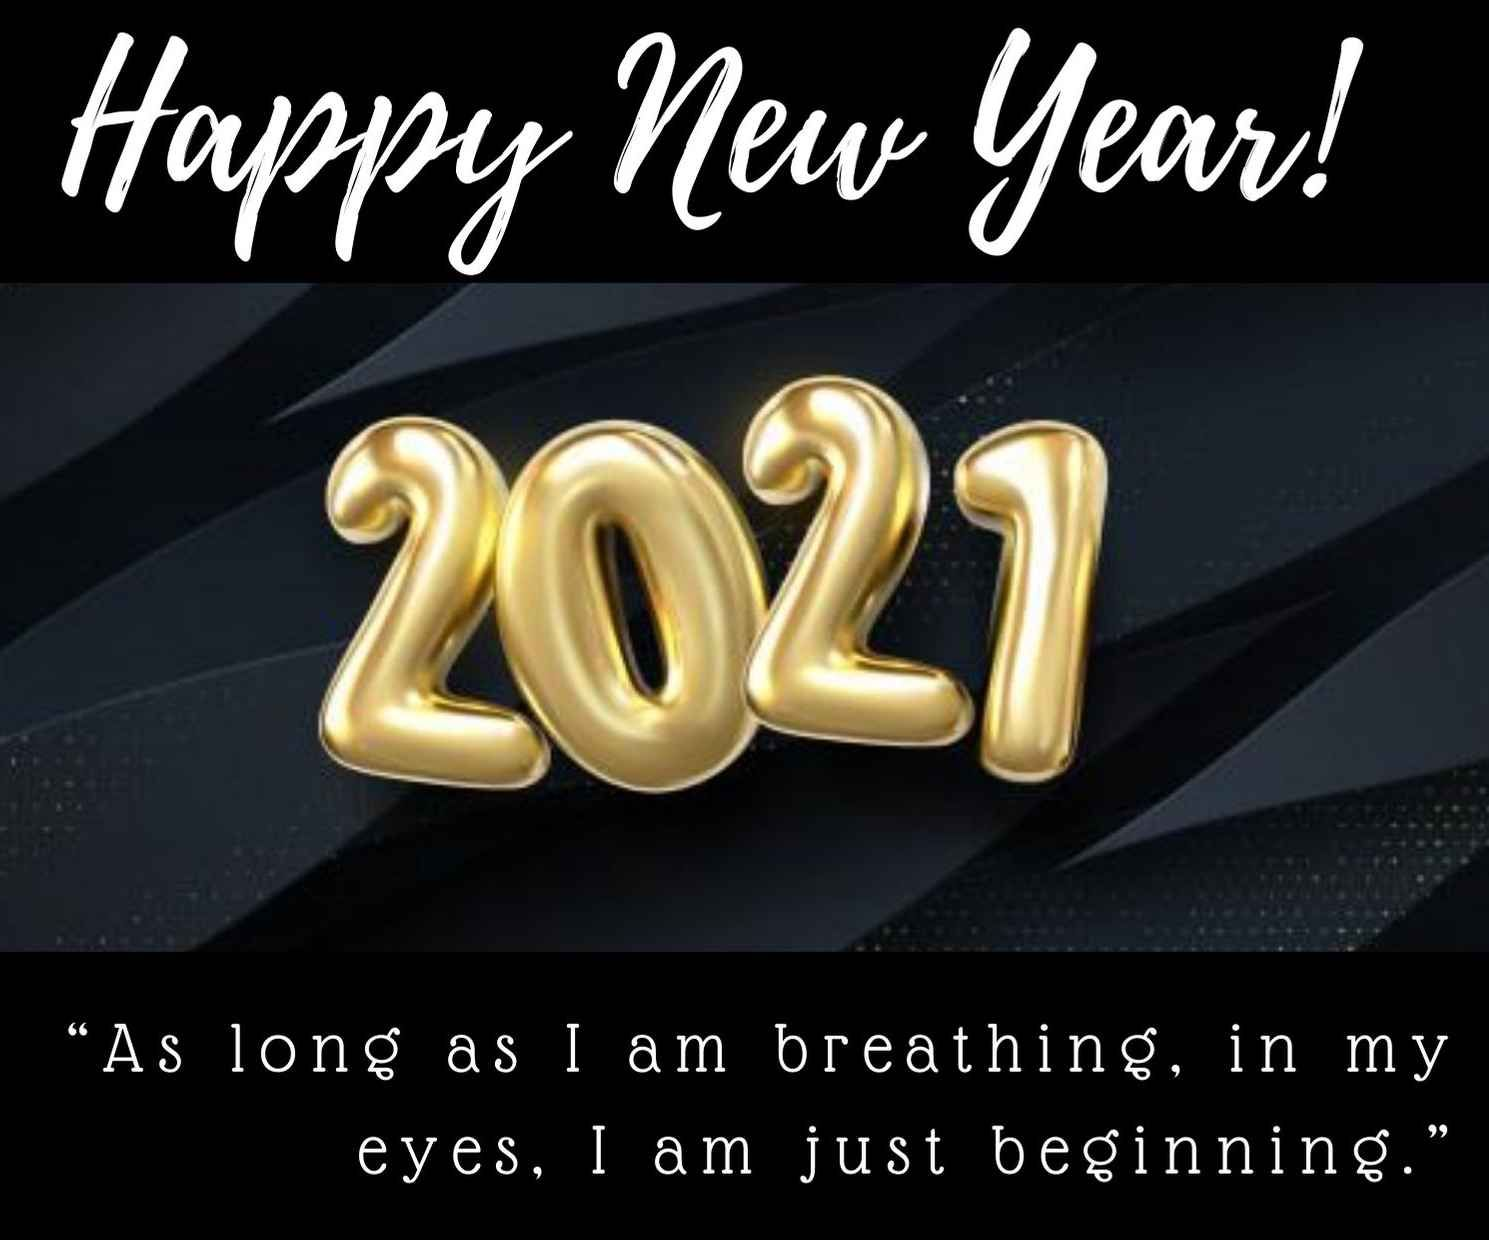 Happy New Year 2021 Quotes For Friends Quotes About New Year New Year Wishes Funny Happy New Year Quotes